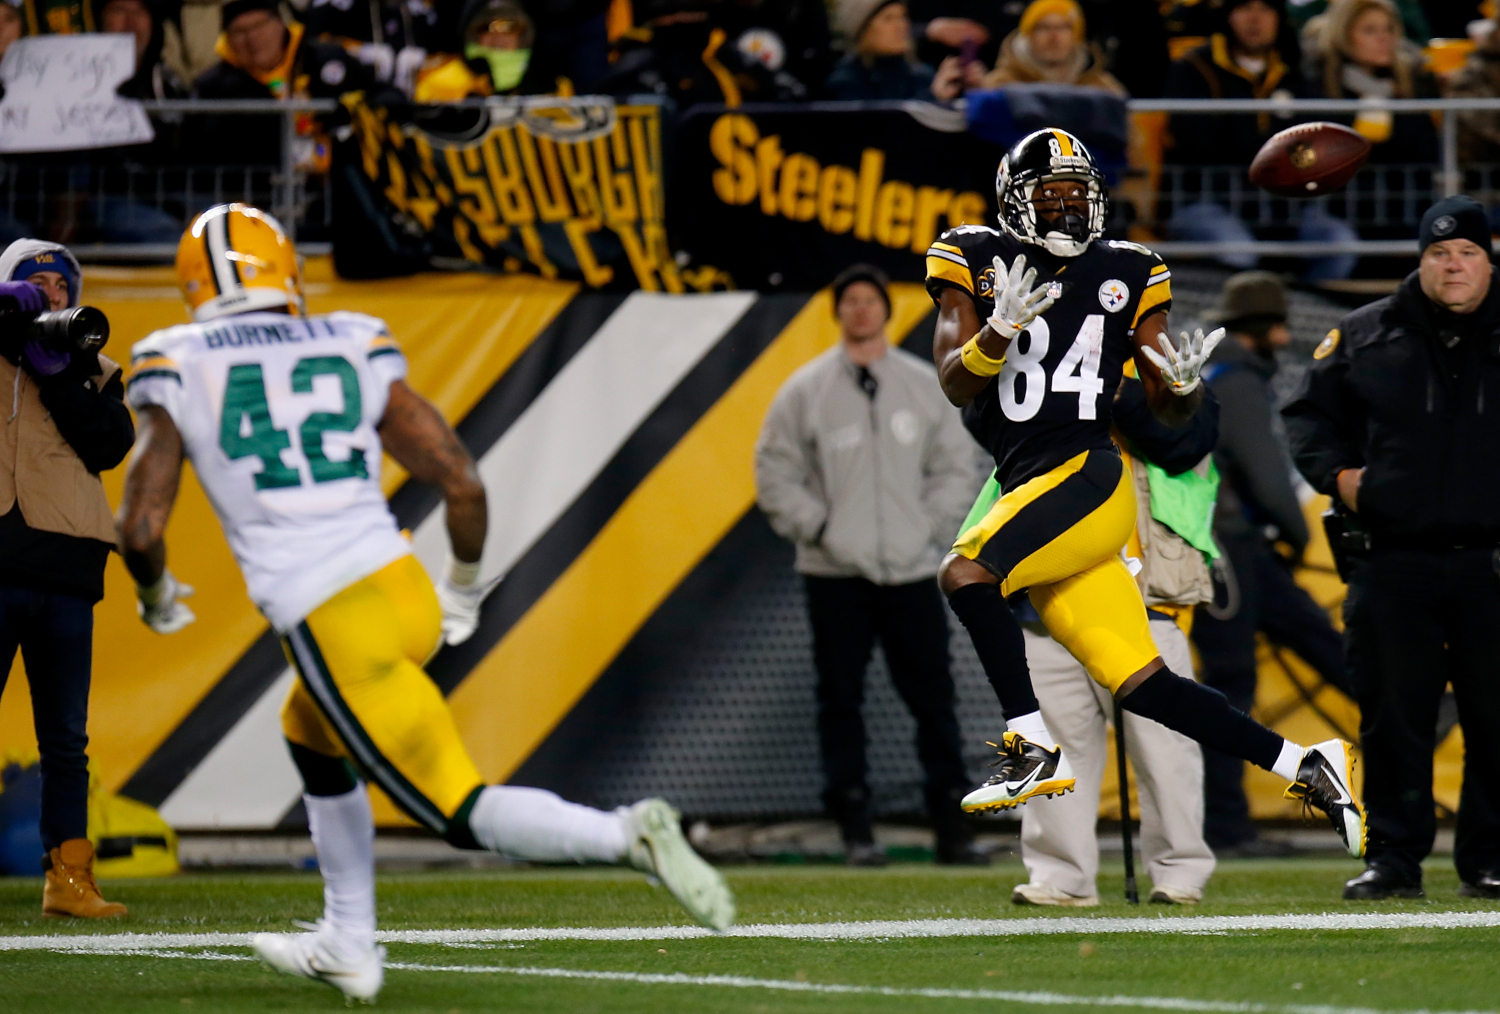 Antonio Brown rose from the sixth round of the NFL draft to become a 4-time All-Pro